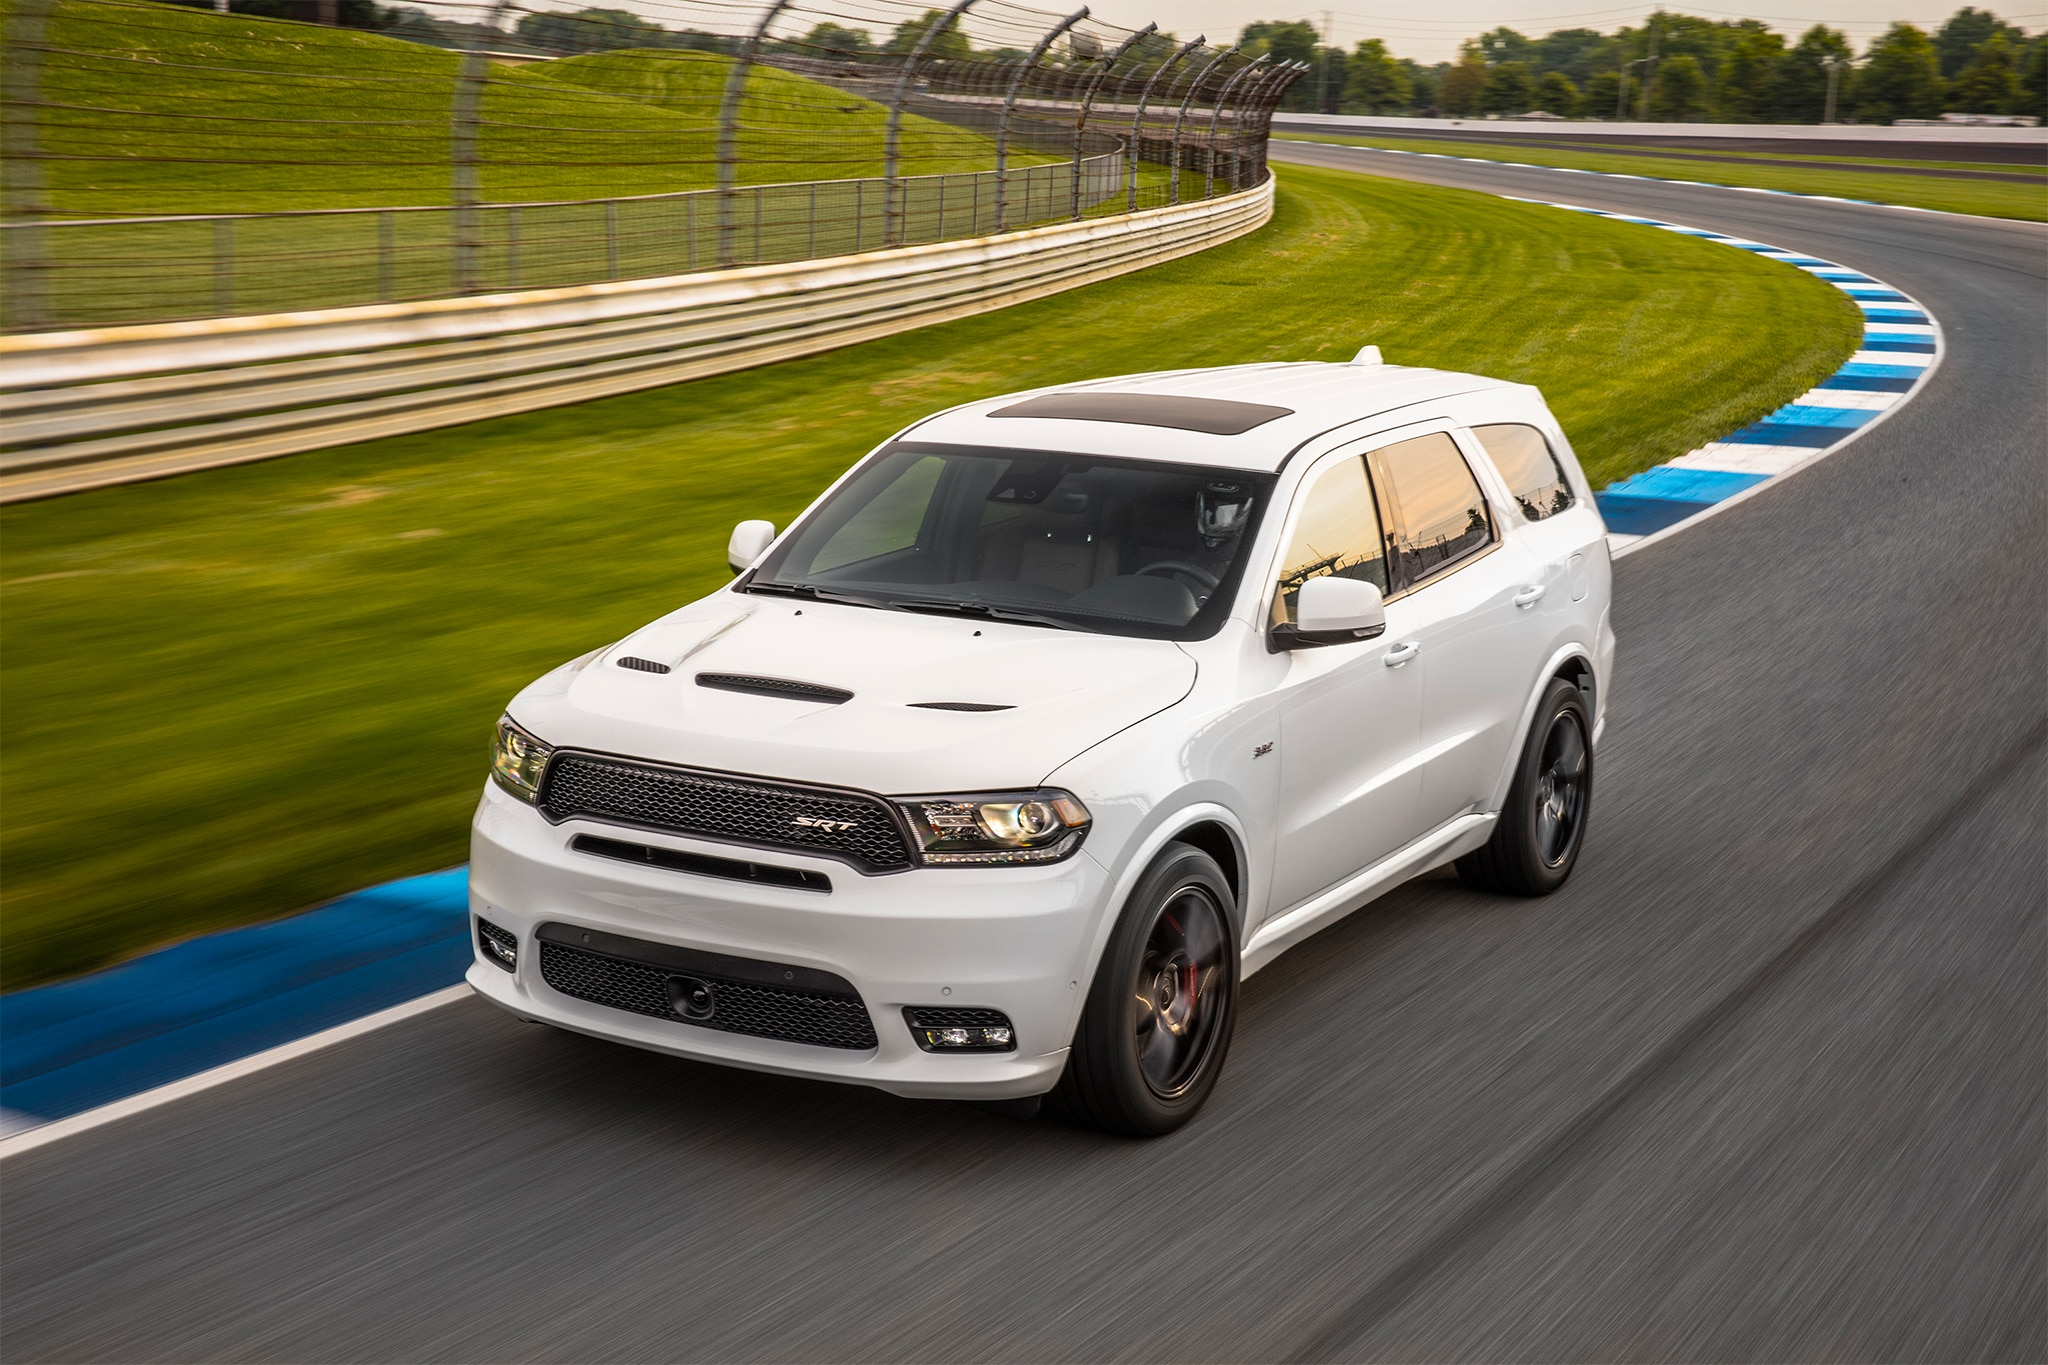 2018 Dodge Durango Srt First Drive Review Automobile